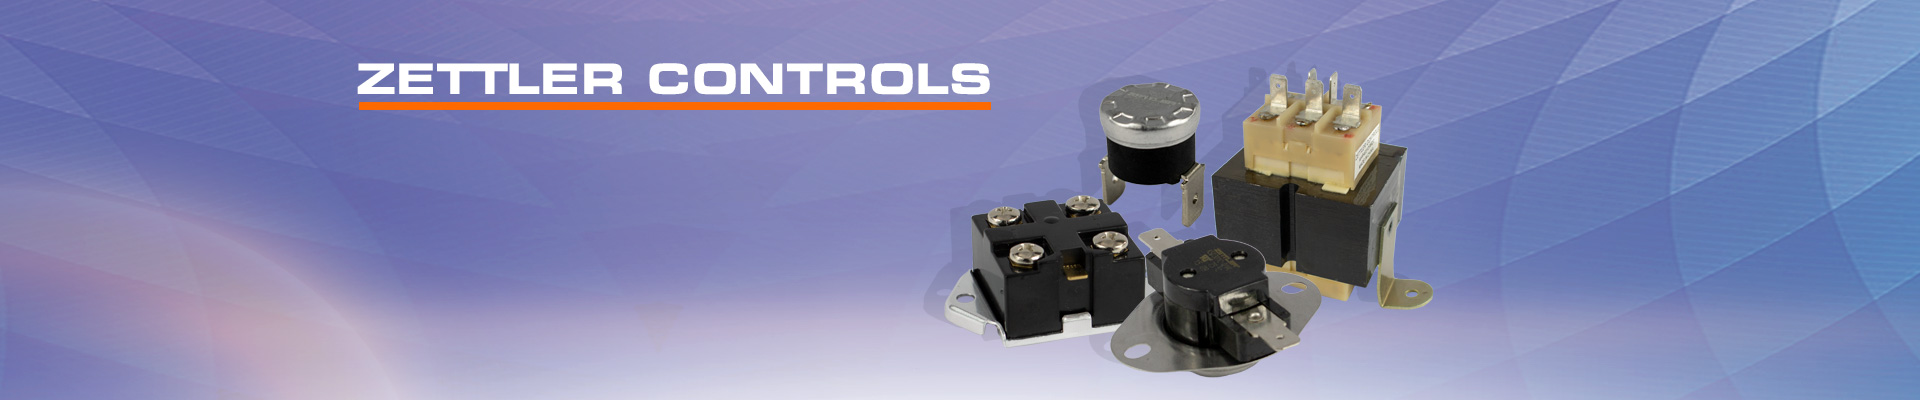 ZETTLER Group Controls